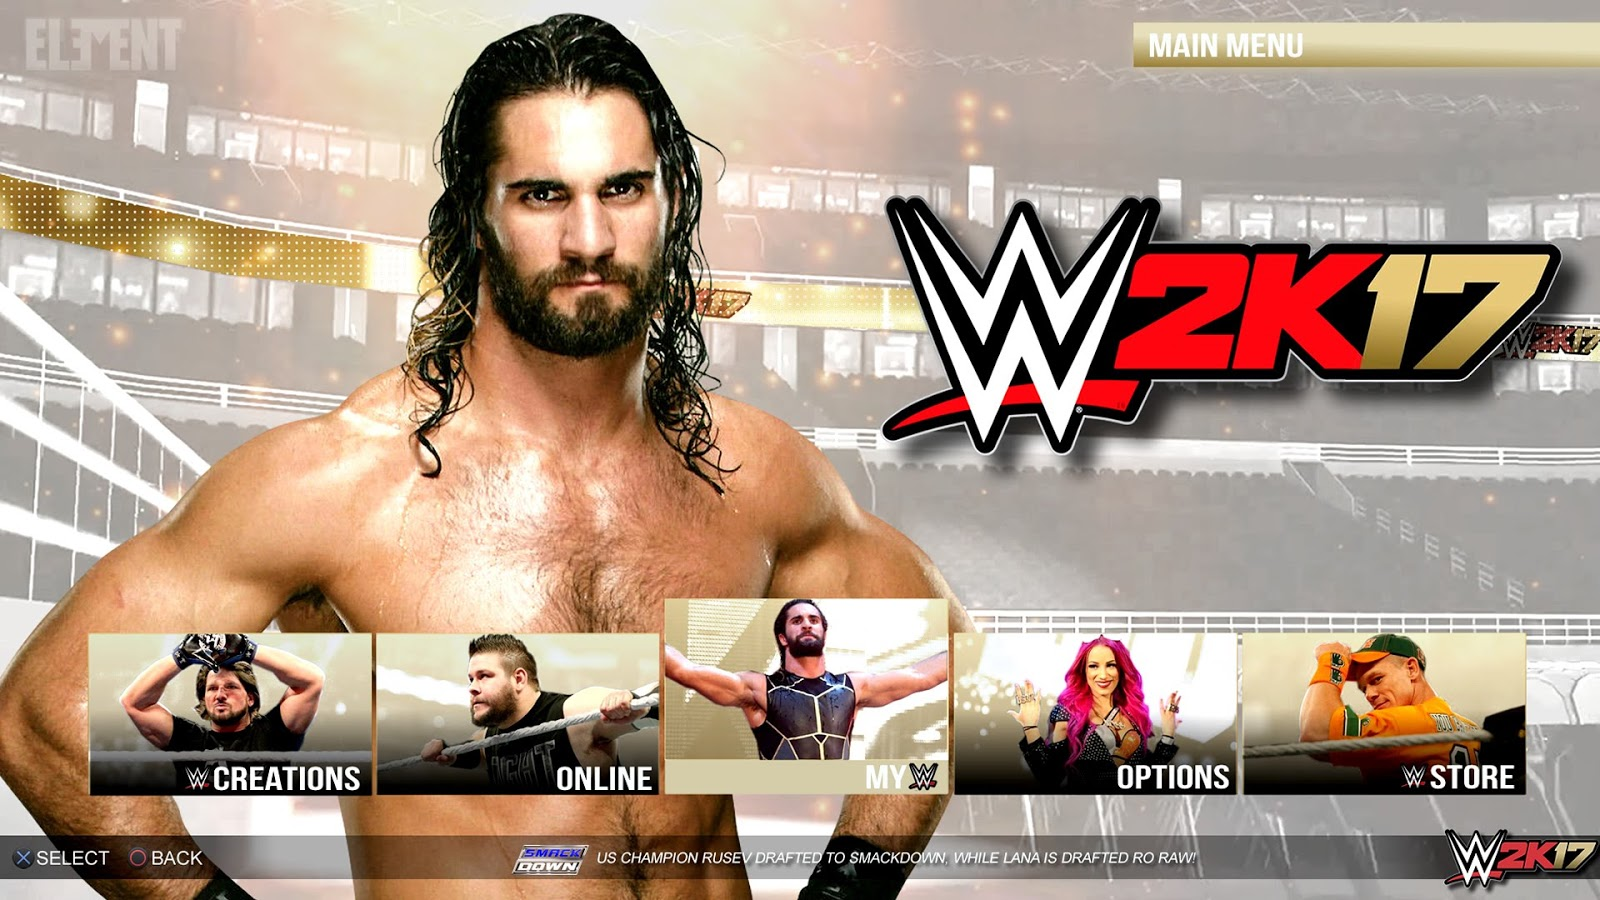 Wwe 2k 17 download | WWE 2k17 Game APK + DATA Download For Android